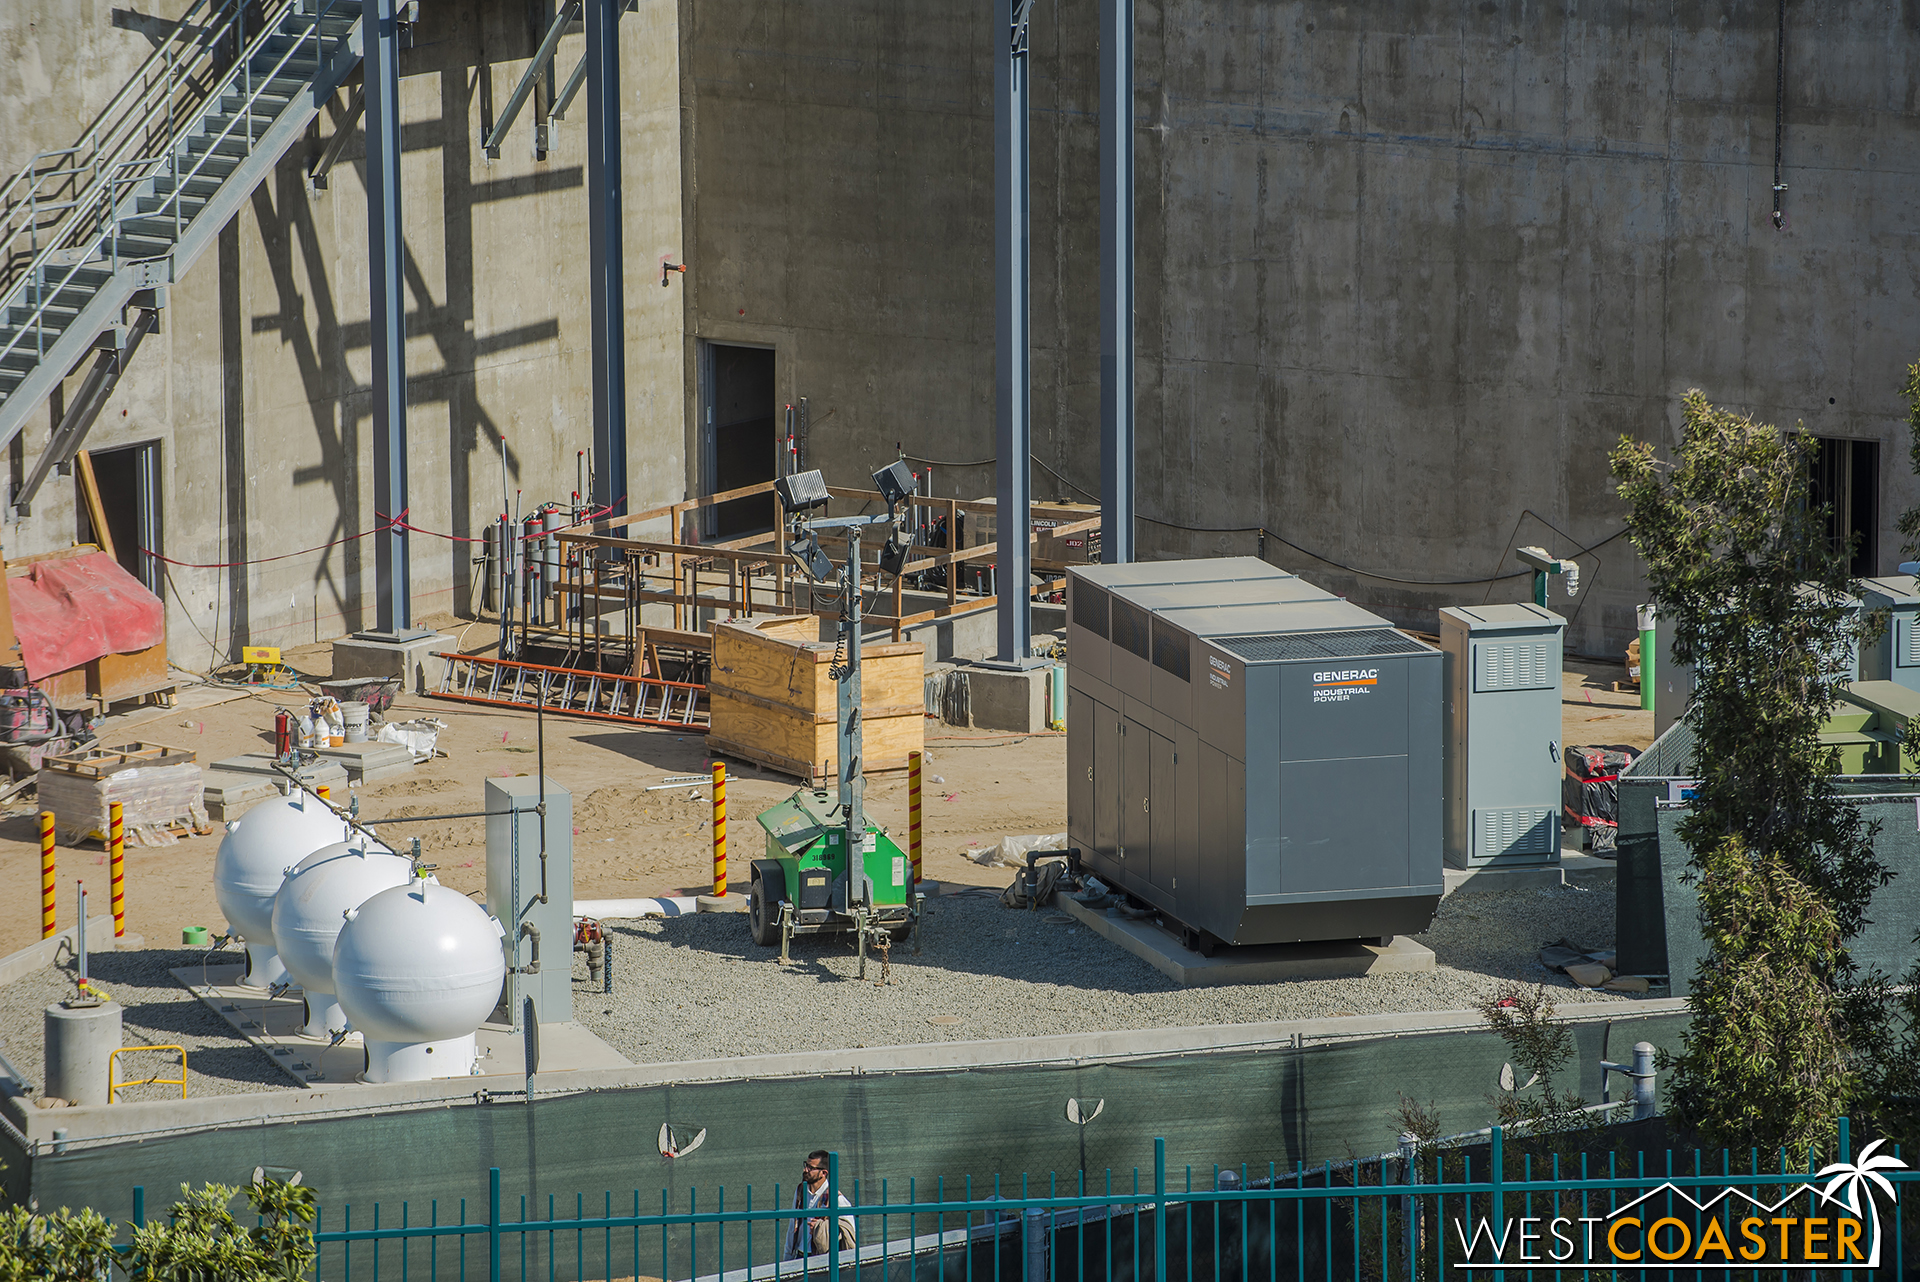 More ground equipment in the utility yard. Giant golf balls join the electrical switchgear.